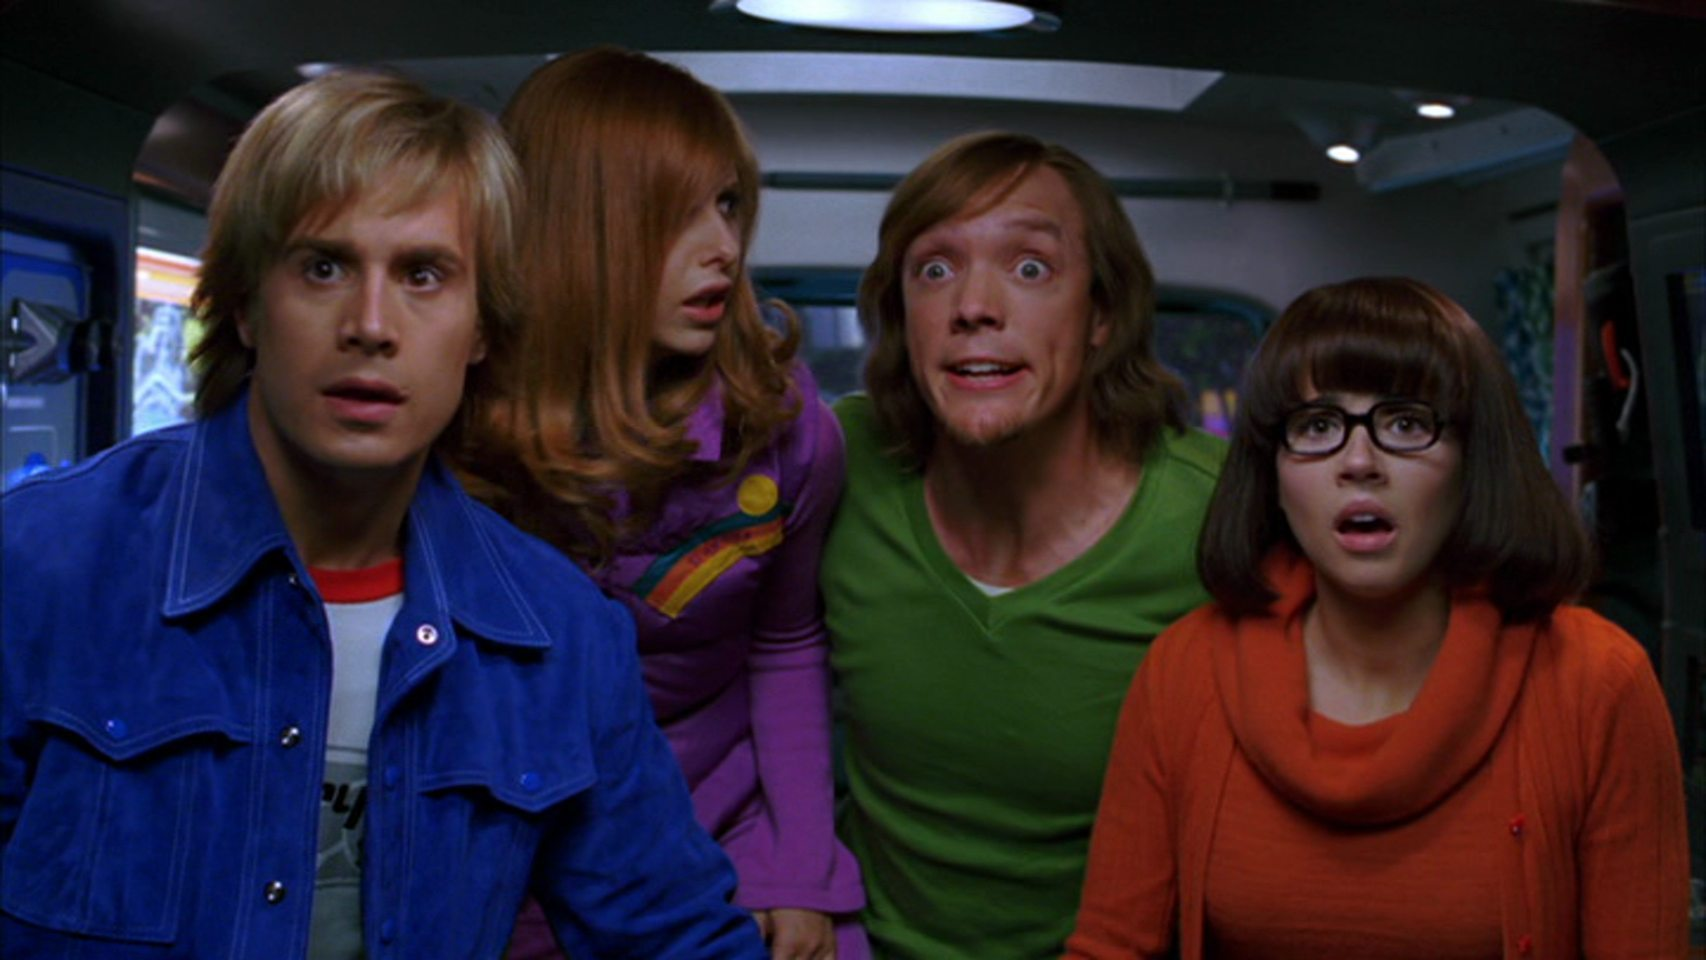 Scooby Doo 2 Monsters Unleashed Scooby Doo Image 21455318 Fanpop Page 11